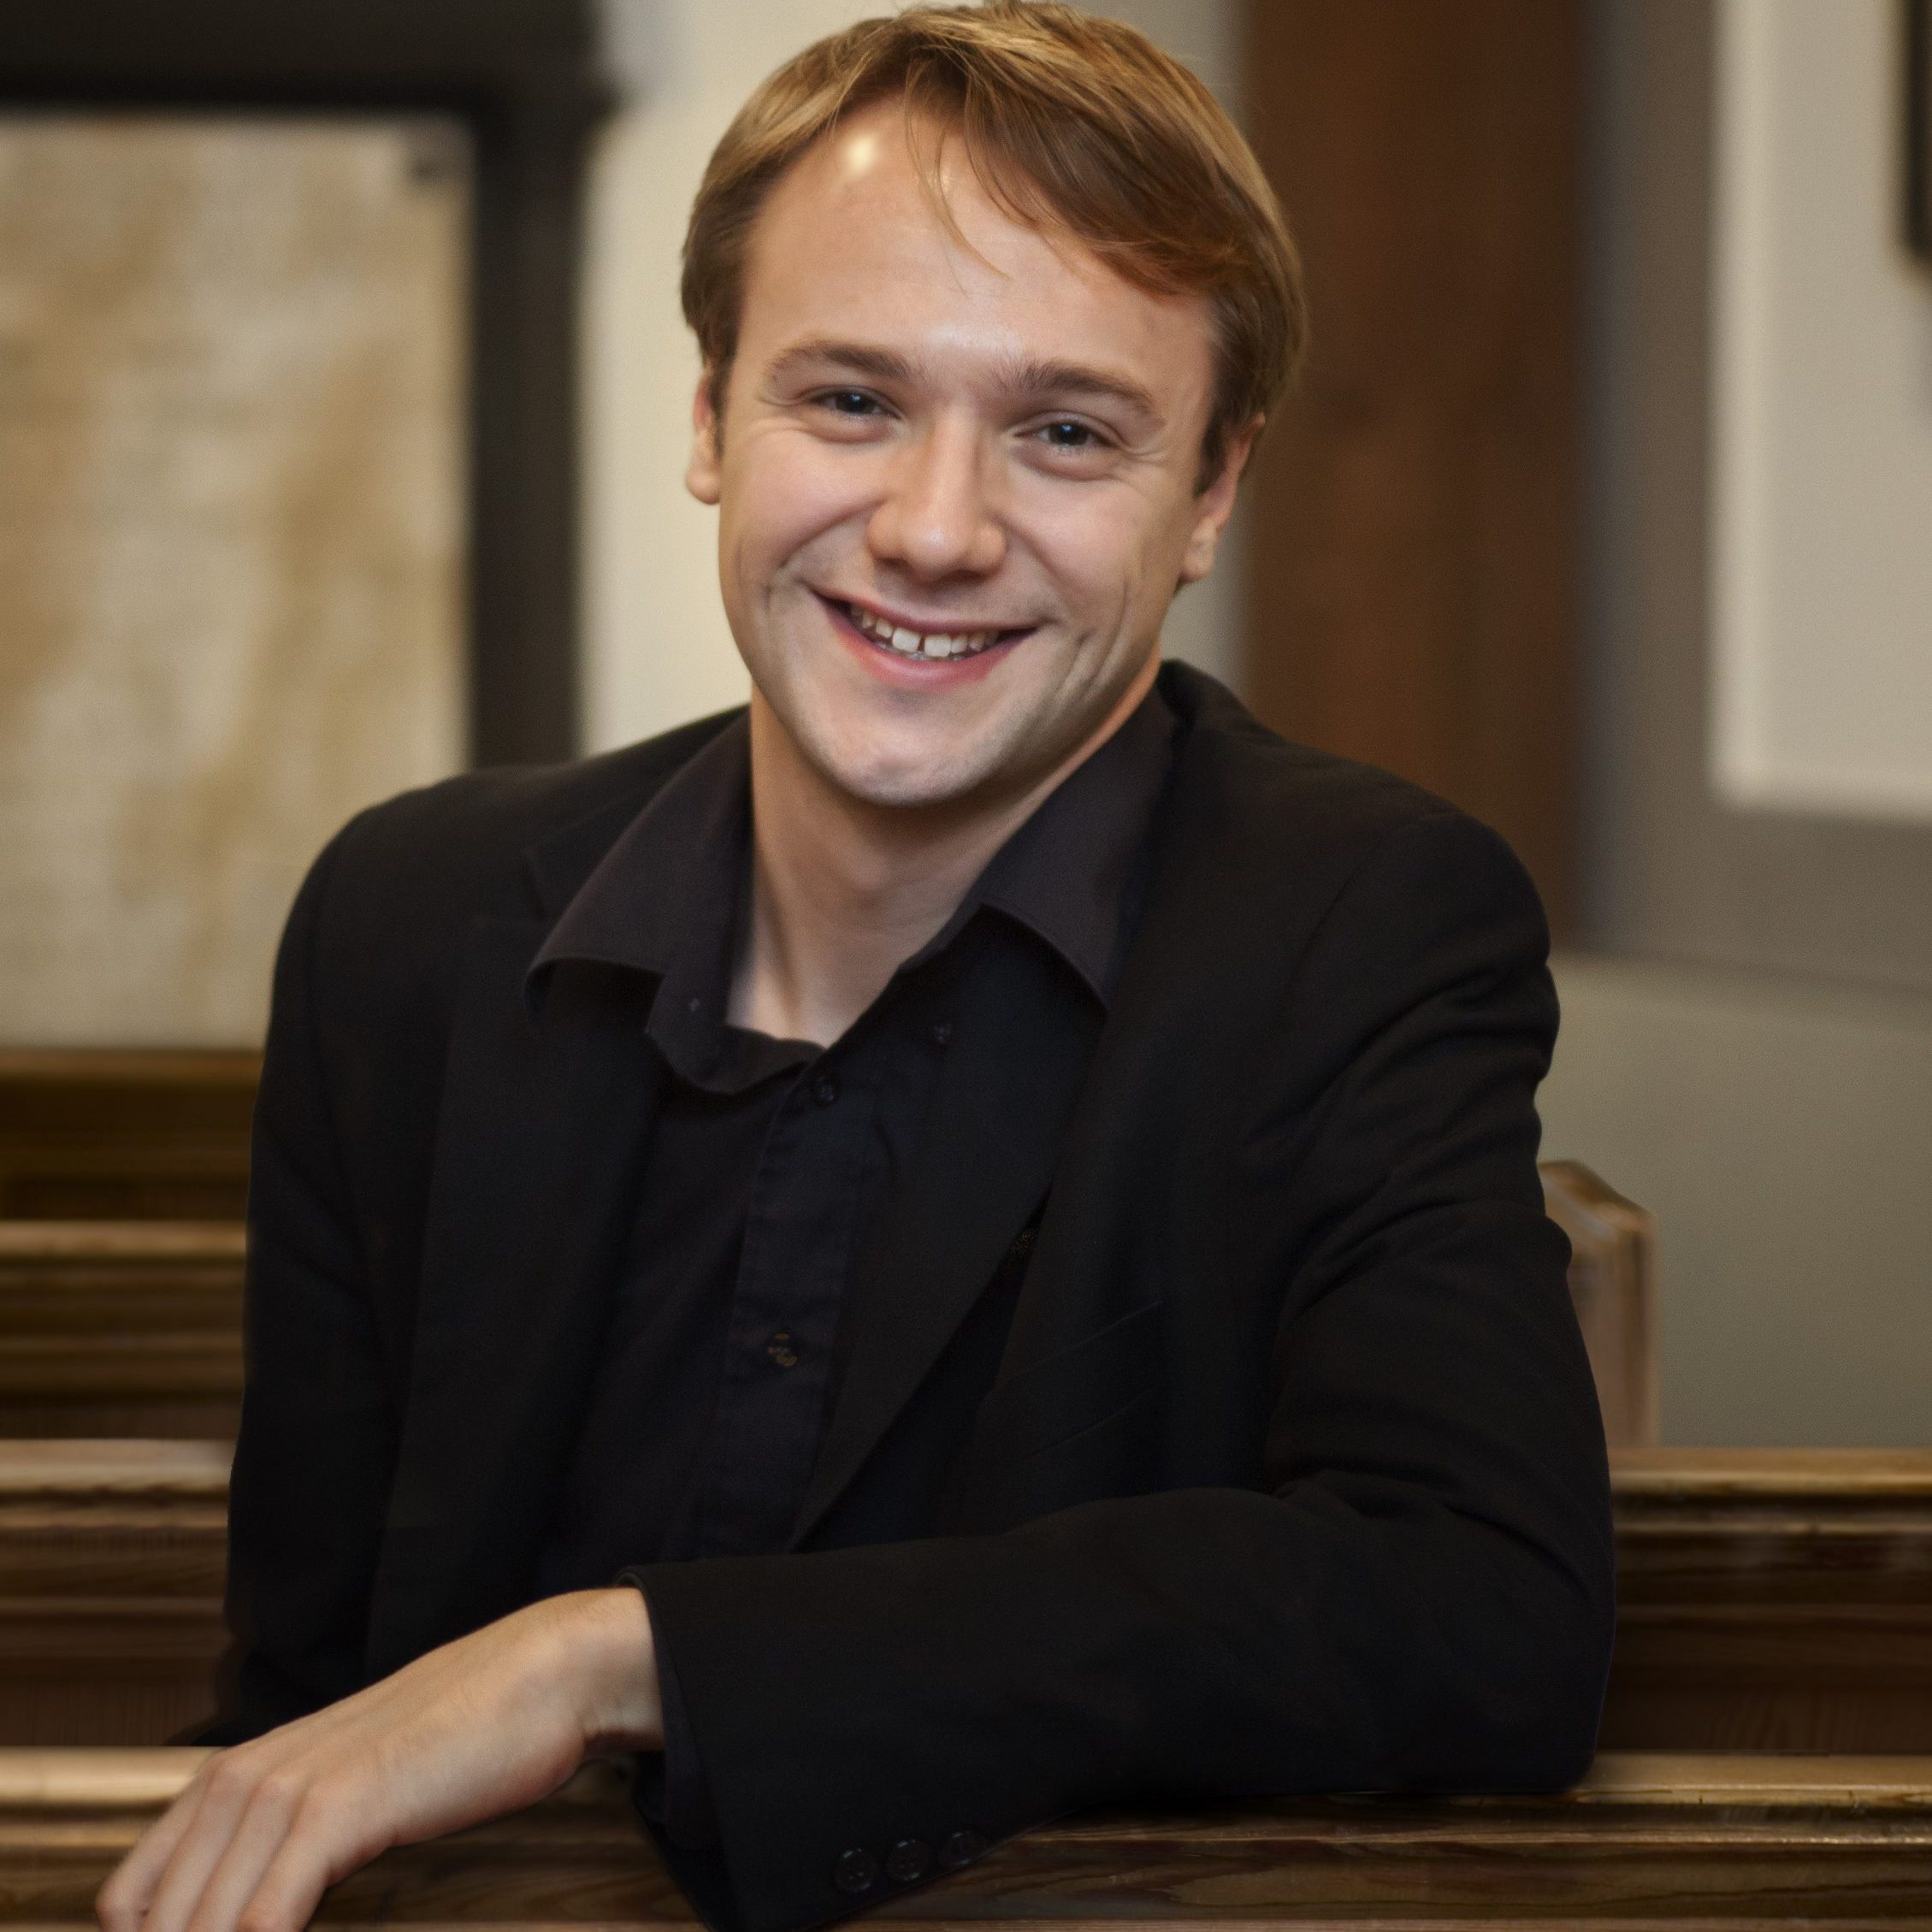 Relaxed man wearing all black, smiling at the camera